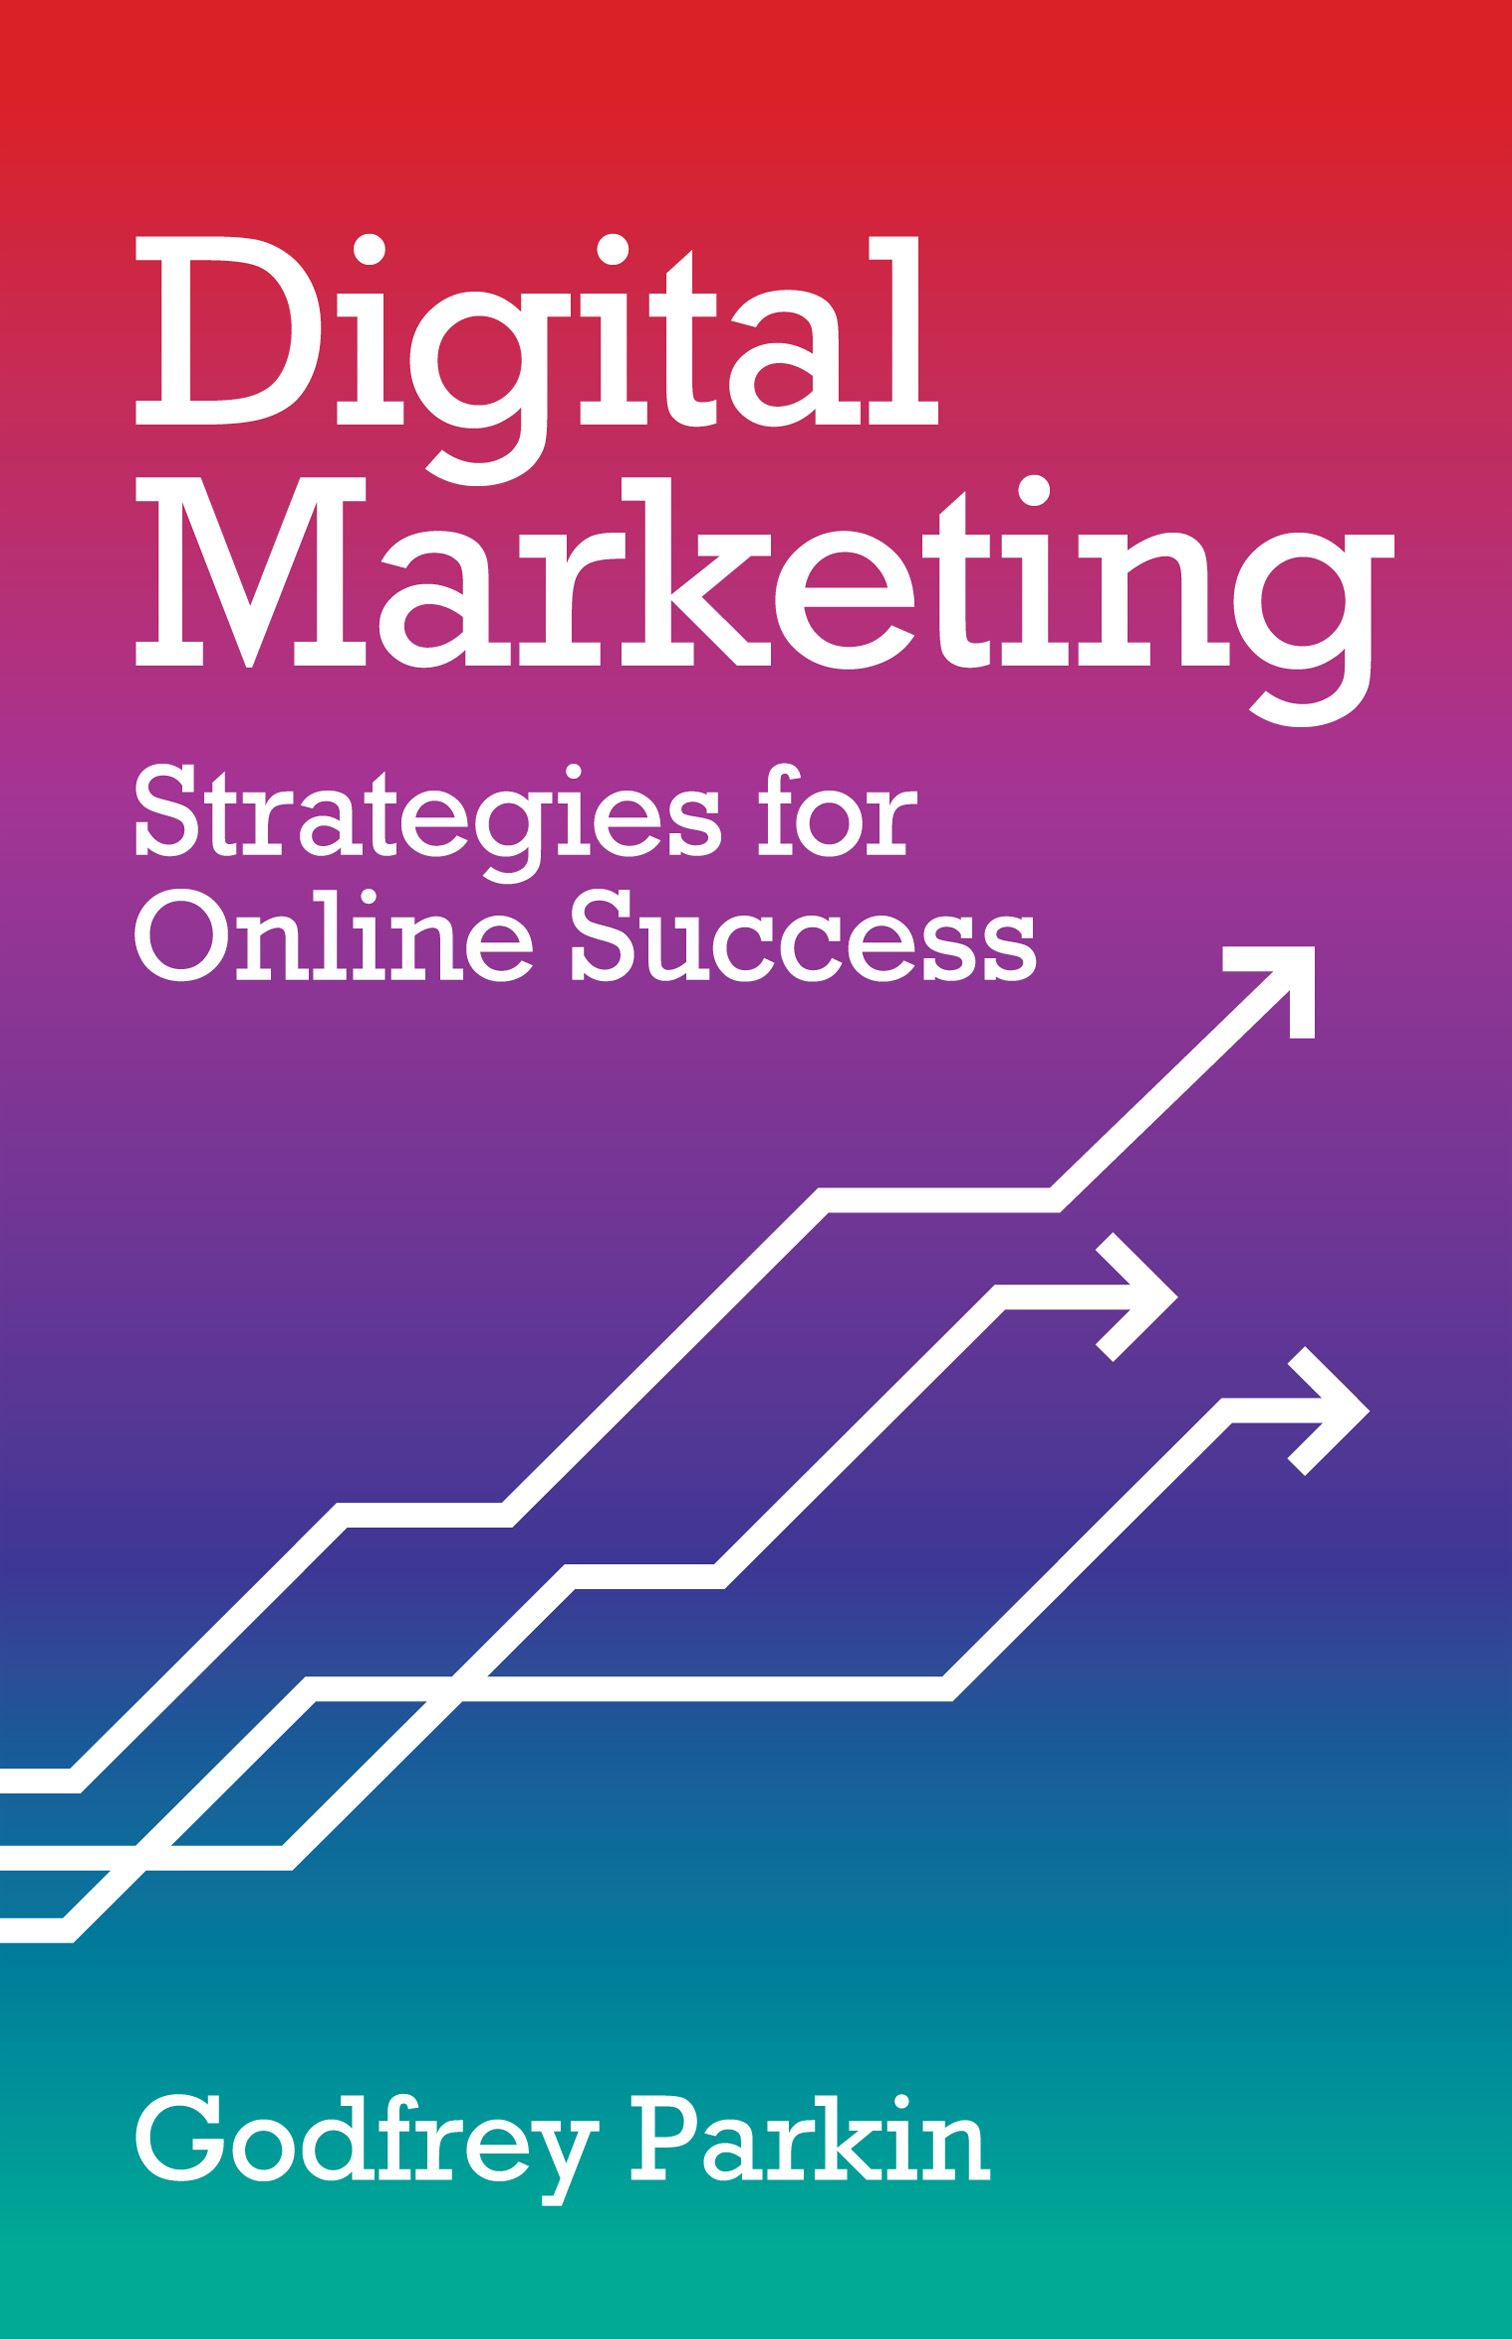 Digital Marketing: Strategies for Online Success By: Godfrey Parkin